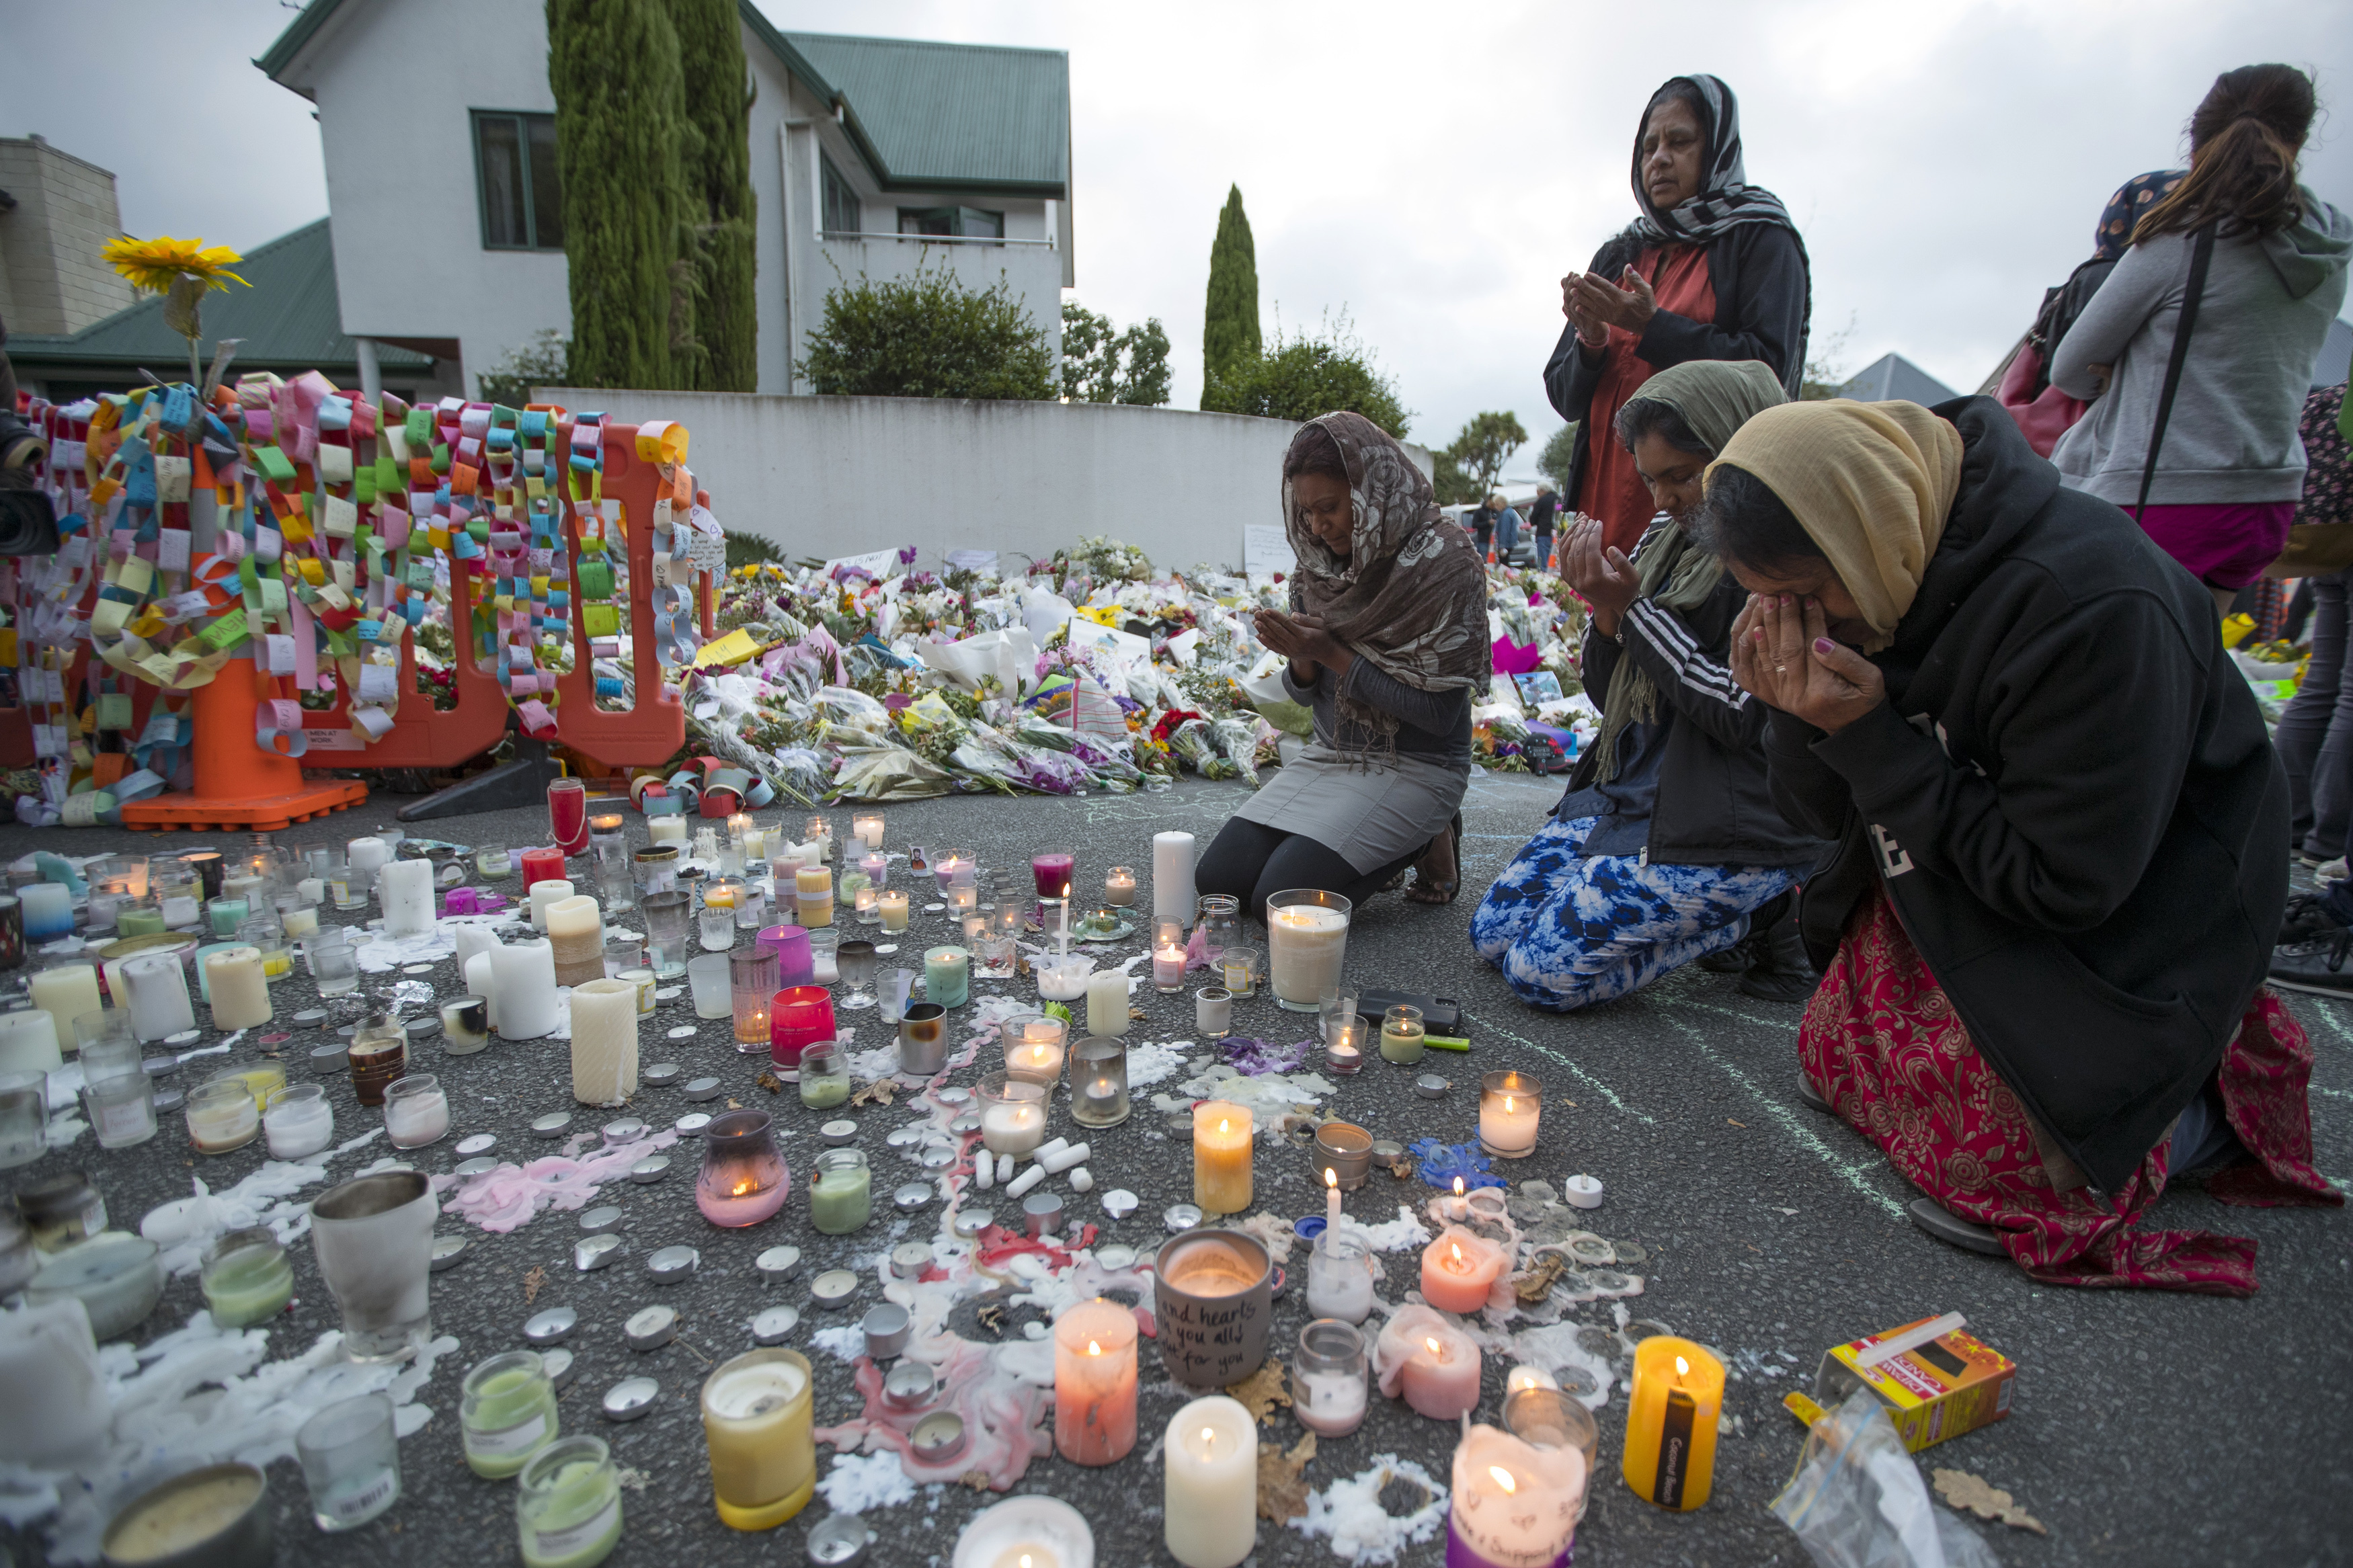 Facebook says 200 people watched the Christchurch massacre live